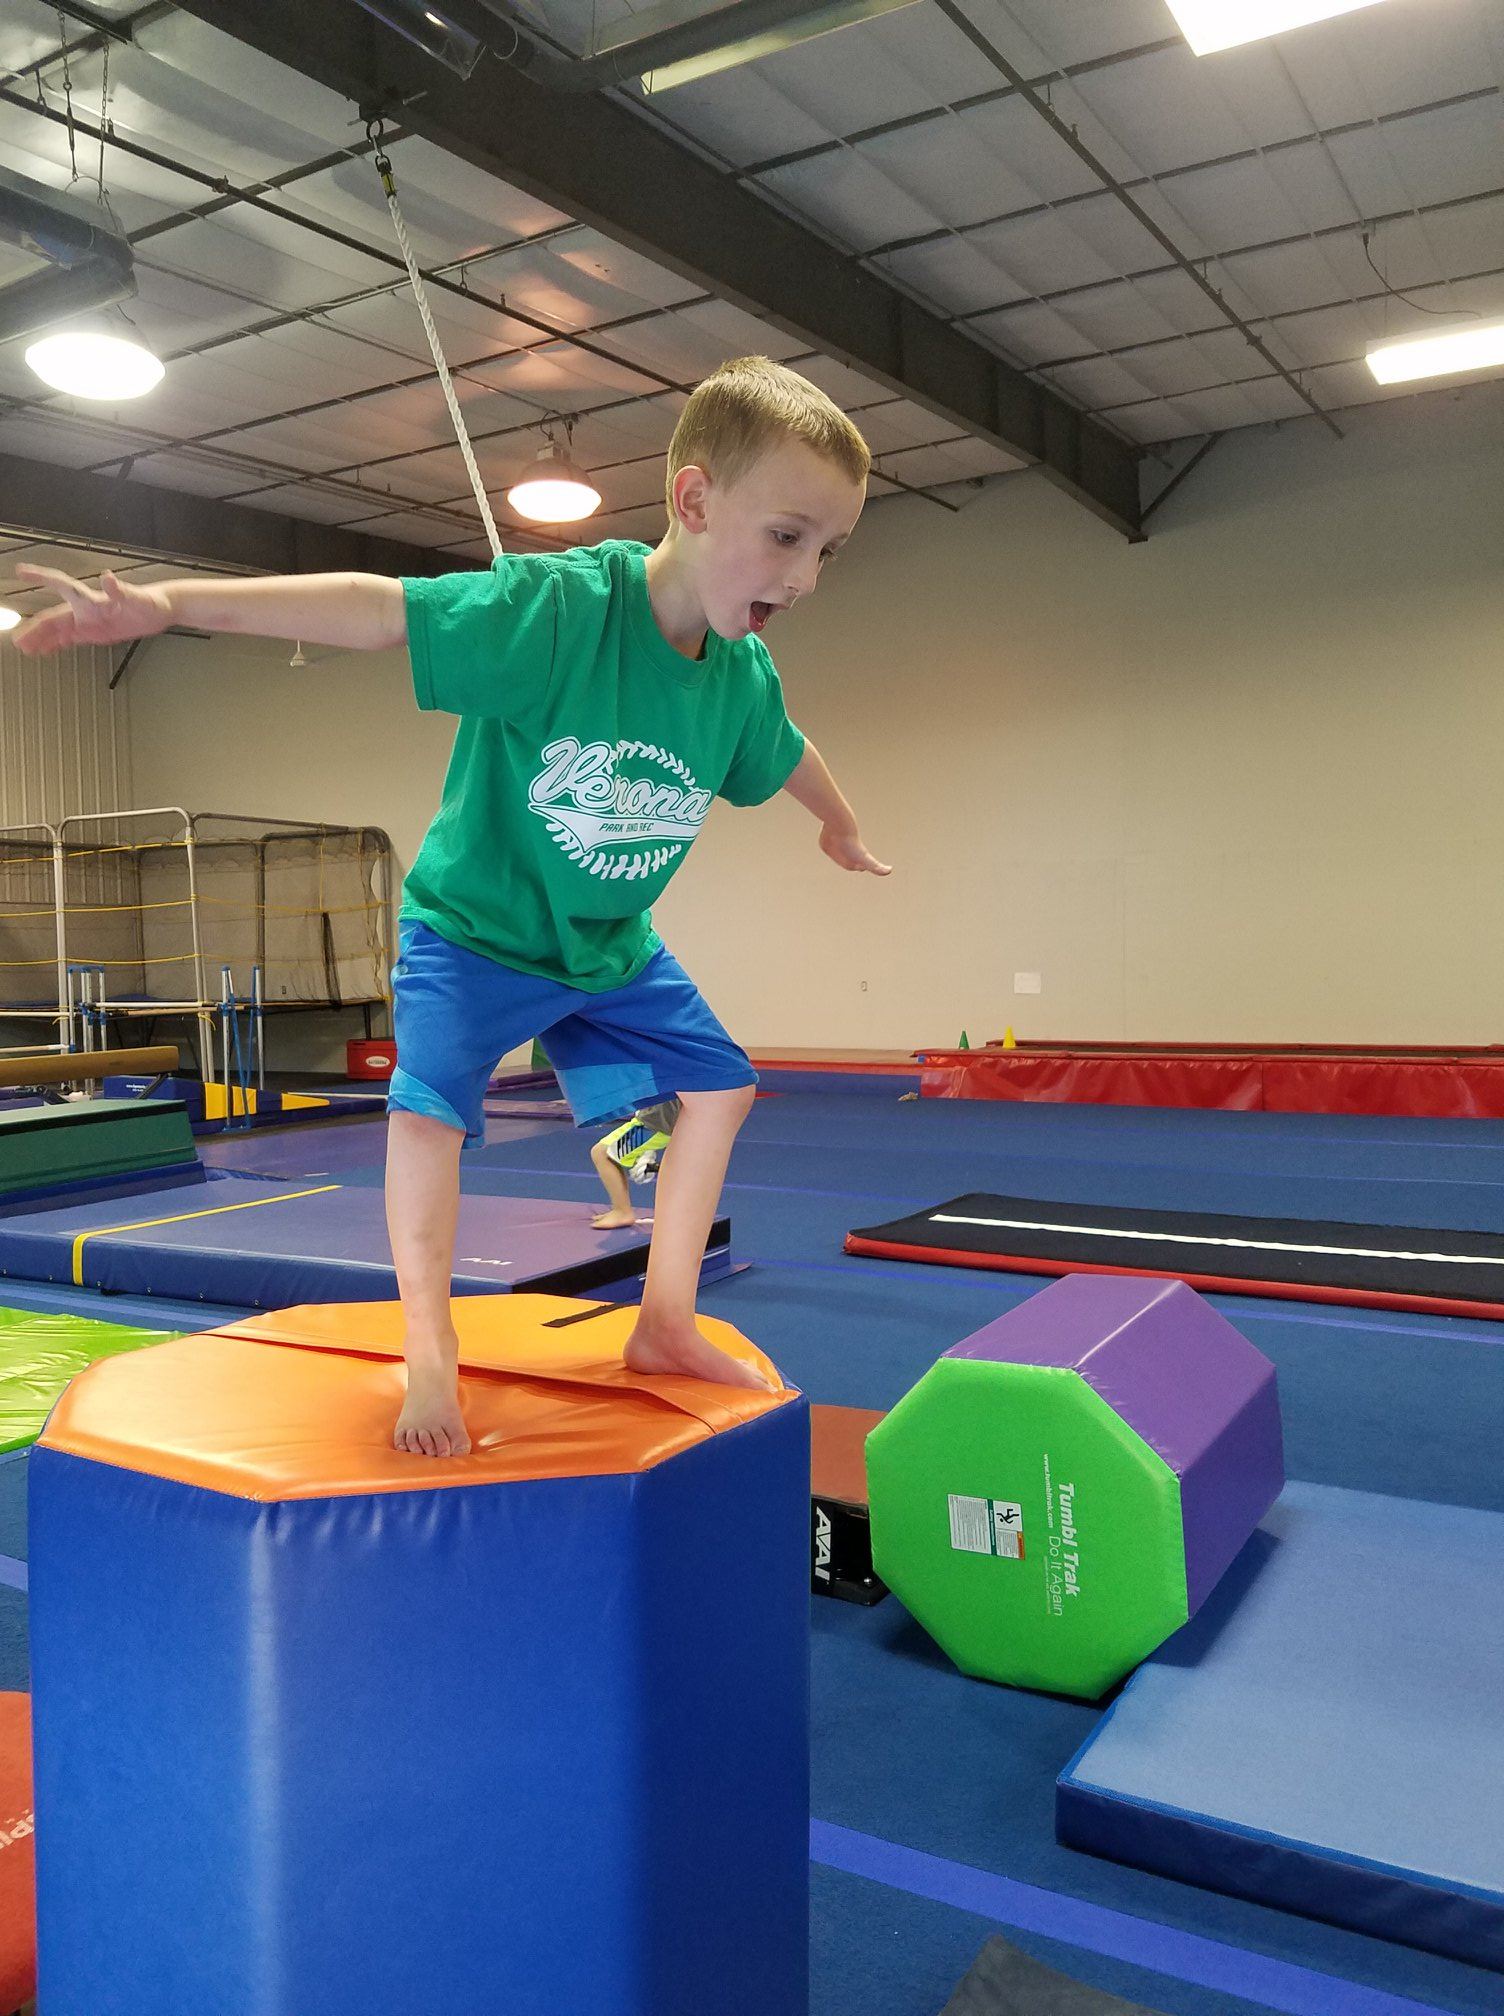 Field Trips - Capital Gymnastics Field Trips are a great way for your group to jump, roll, swing, bounce, flip, cartwheel, play games, have fun and get their energy out! We offer field trips for small, medium and large groups.Contact us for pricing and details.